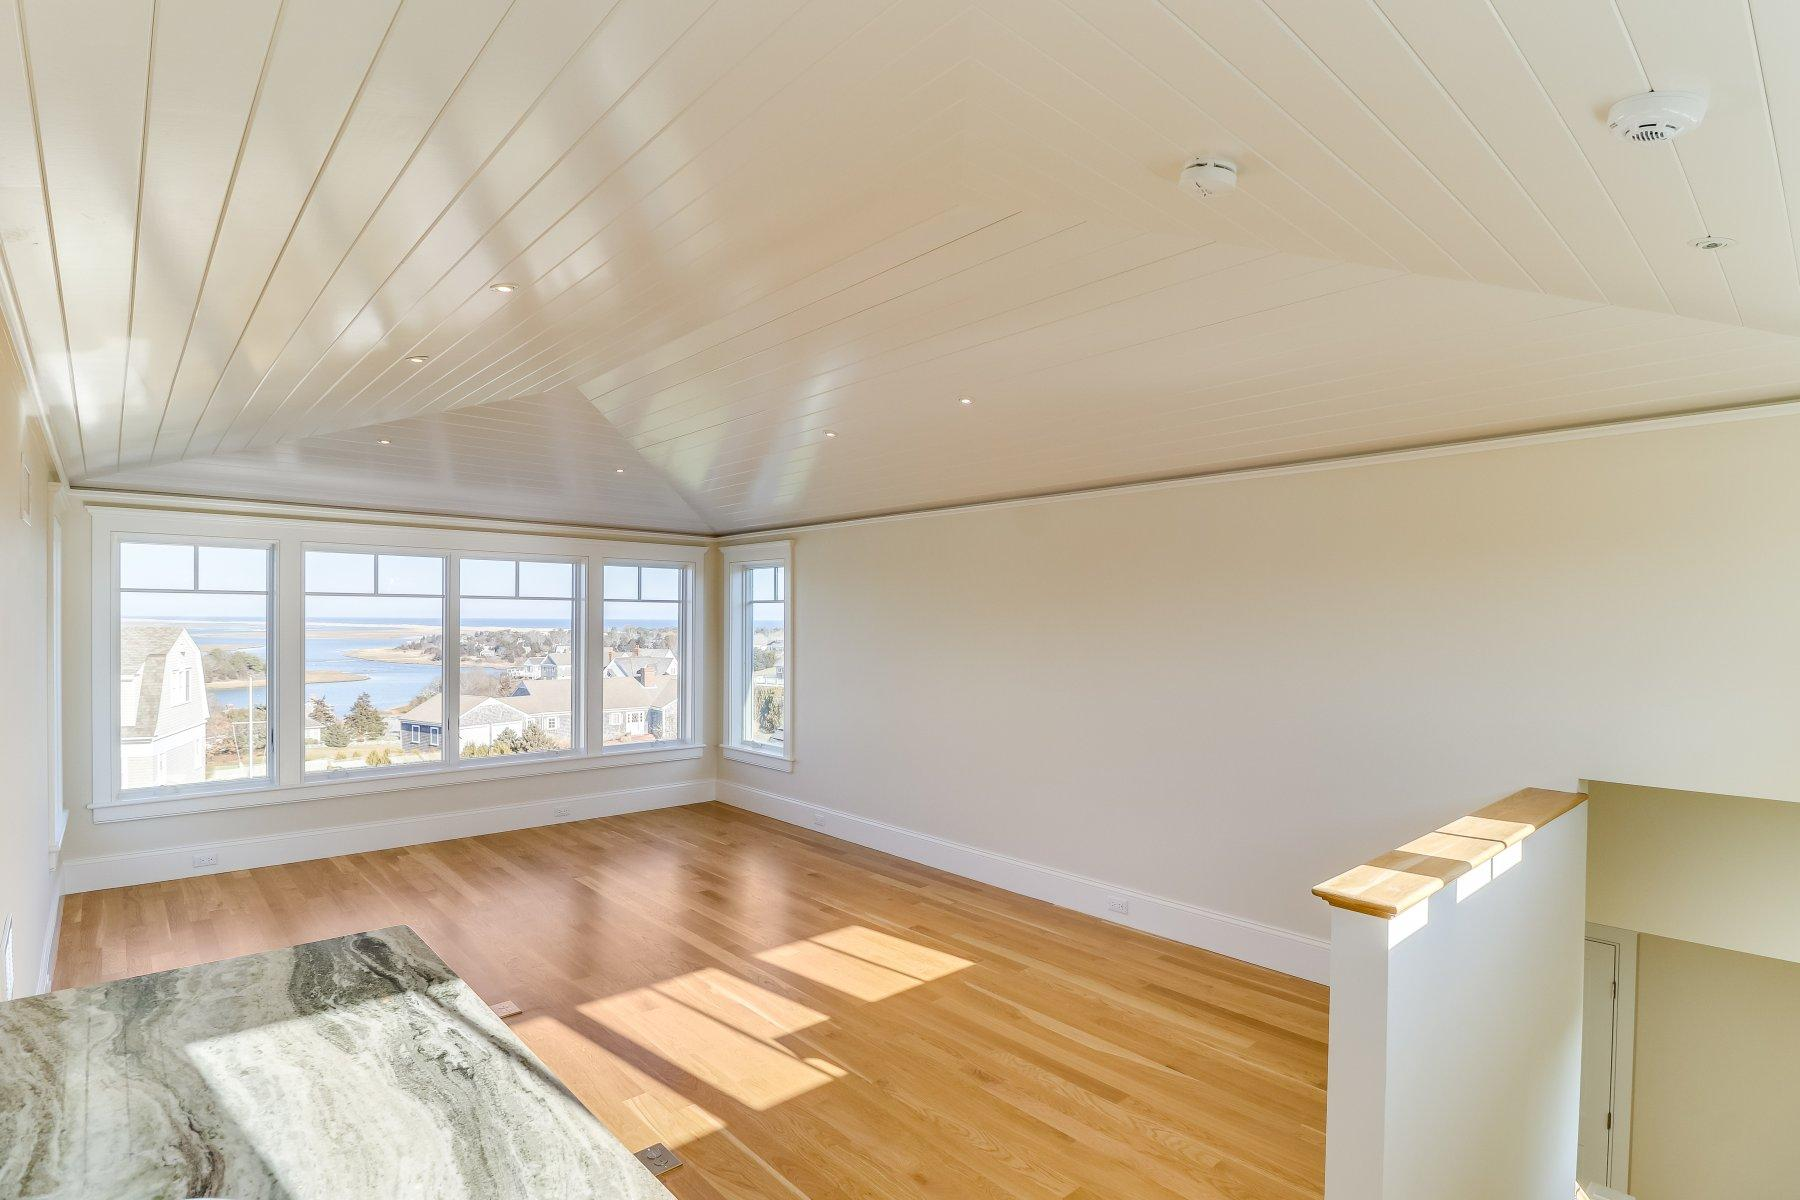 17 overlook circle orleans ma 02643 property image 33